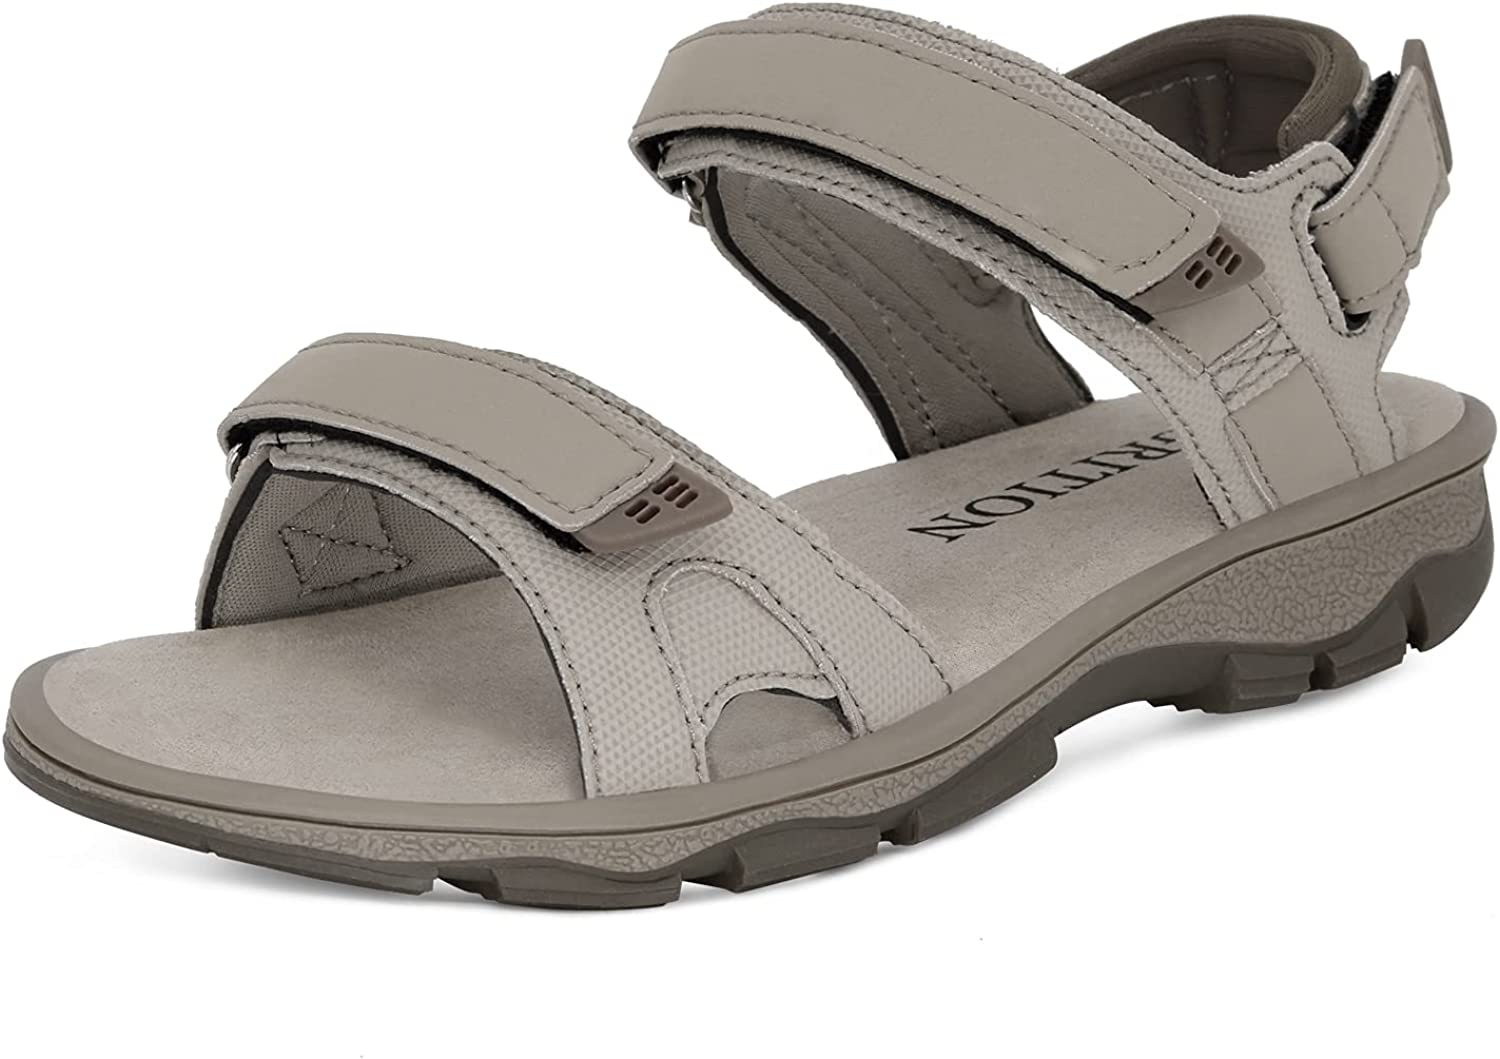 GRITION Hiking Sandals Women Comfortable, Closed Toe Lightweight Outdoor Athtletic Sports Sandals Adjustable Breathable Waterproof For Beach Summer.